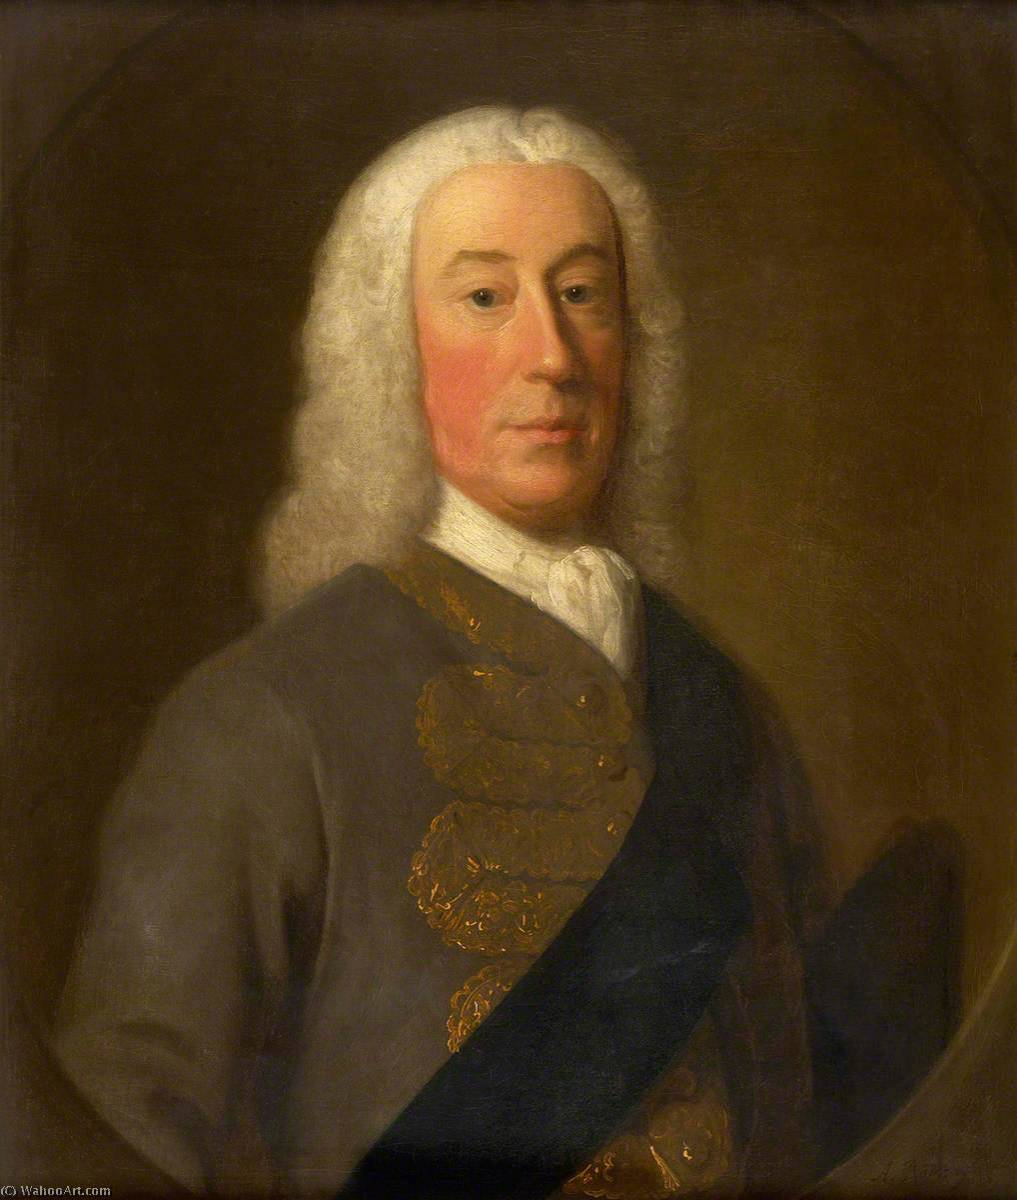 James Murray (1690–1764), 2nd Duke of Atholl, 1743 by Allan Ramsay (1713-1784, Scotland) | Museum Quality Copies Allan Ramsay | WahooArt.com